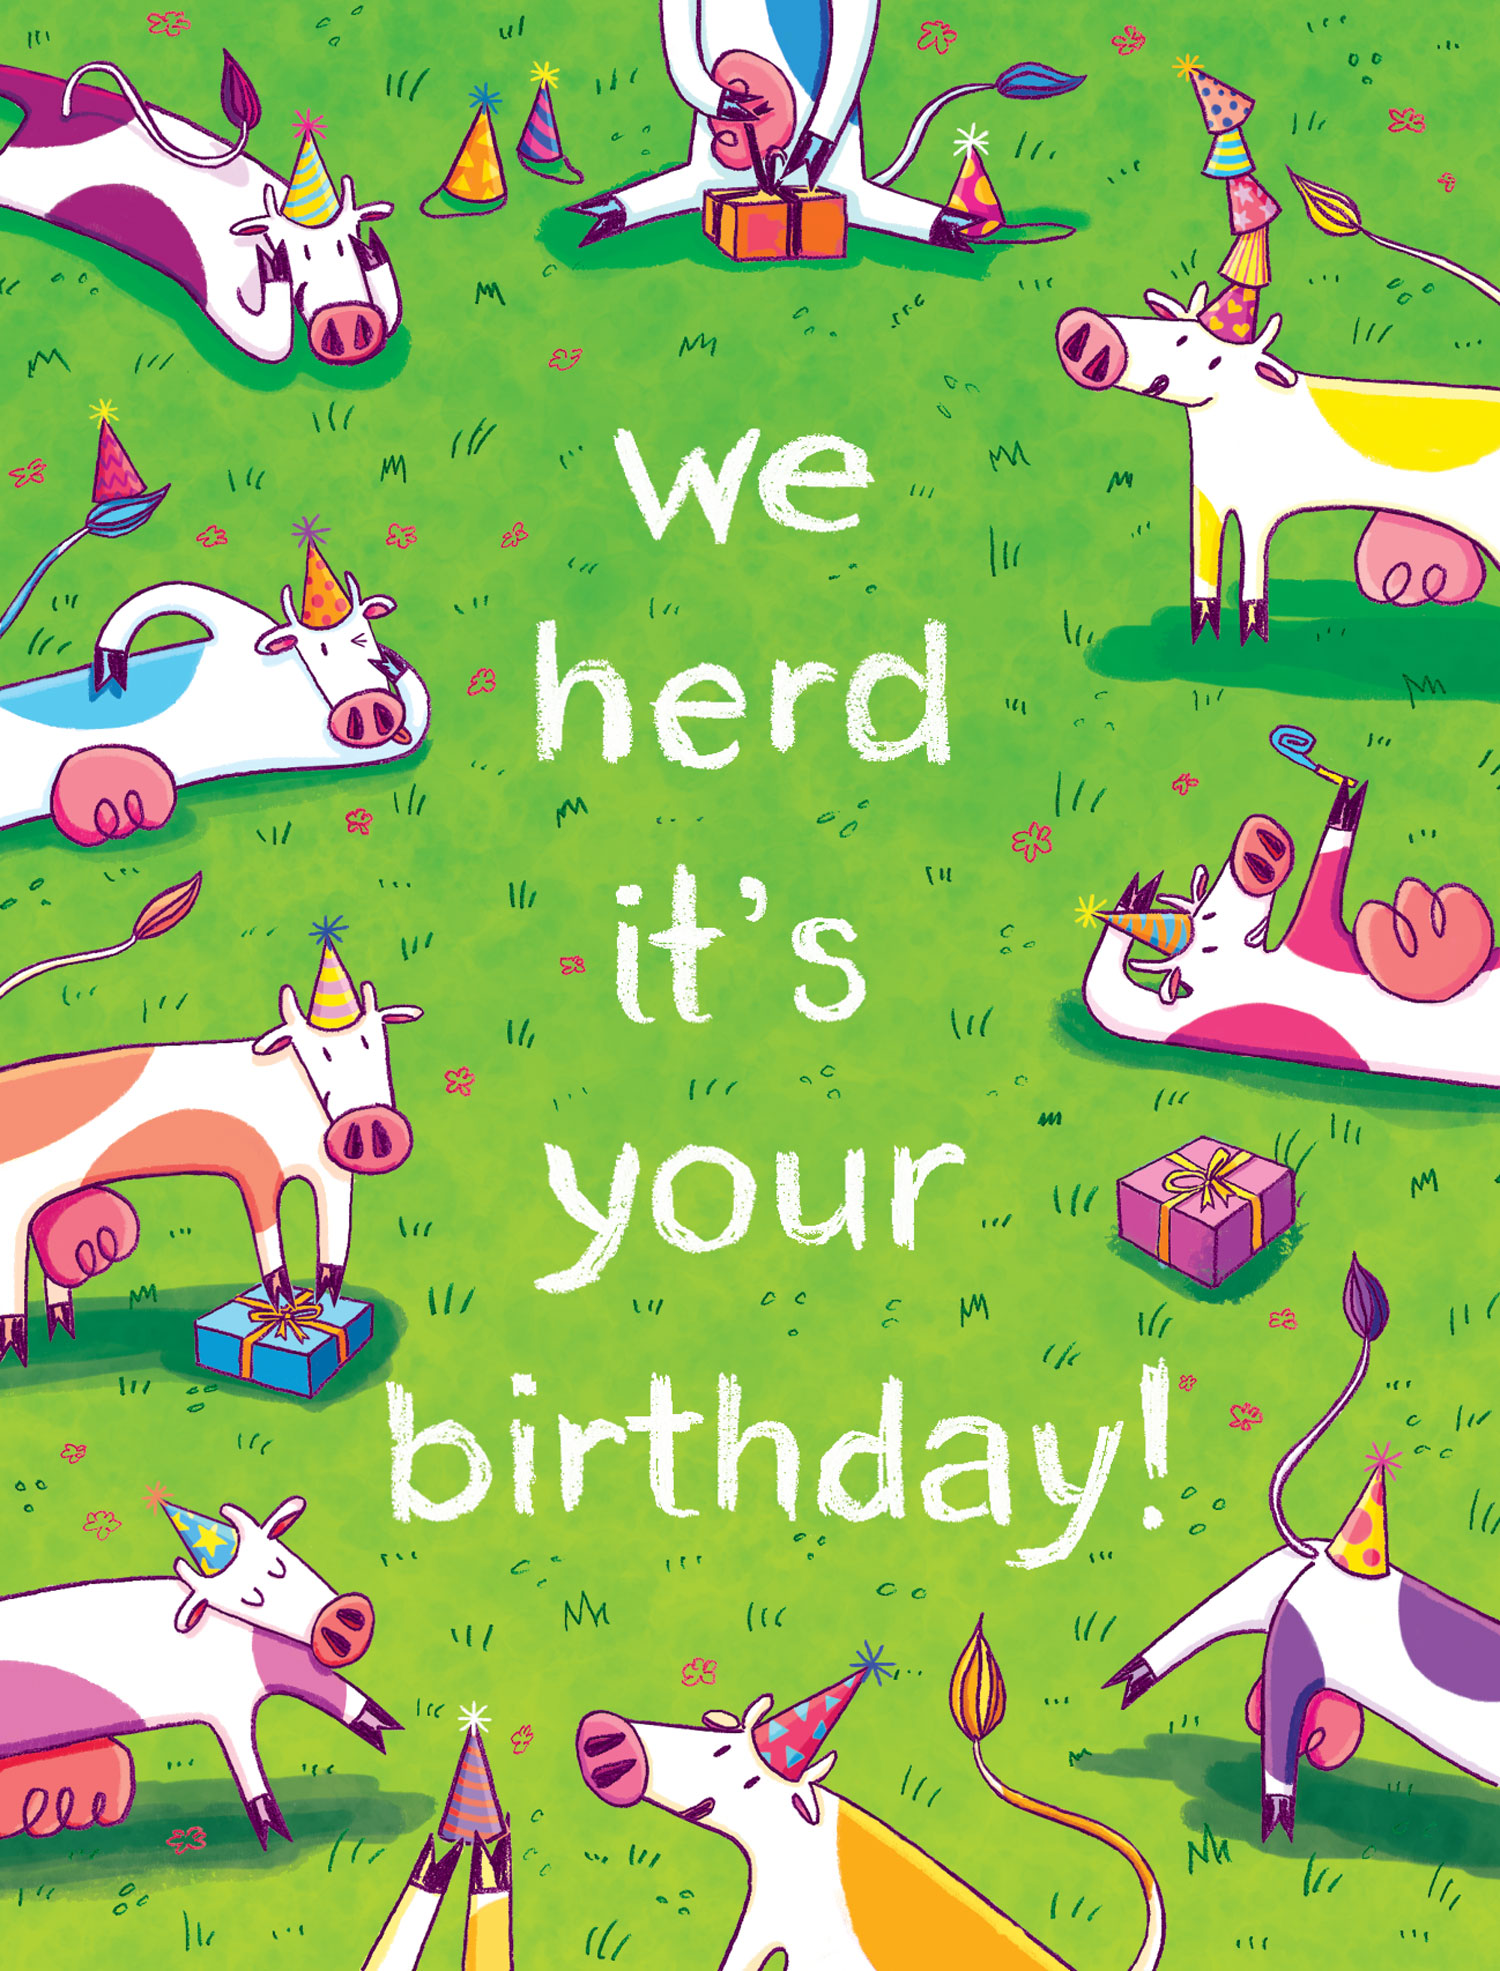 herd-its-your-bday-for-web.jpg